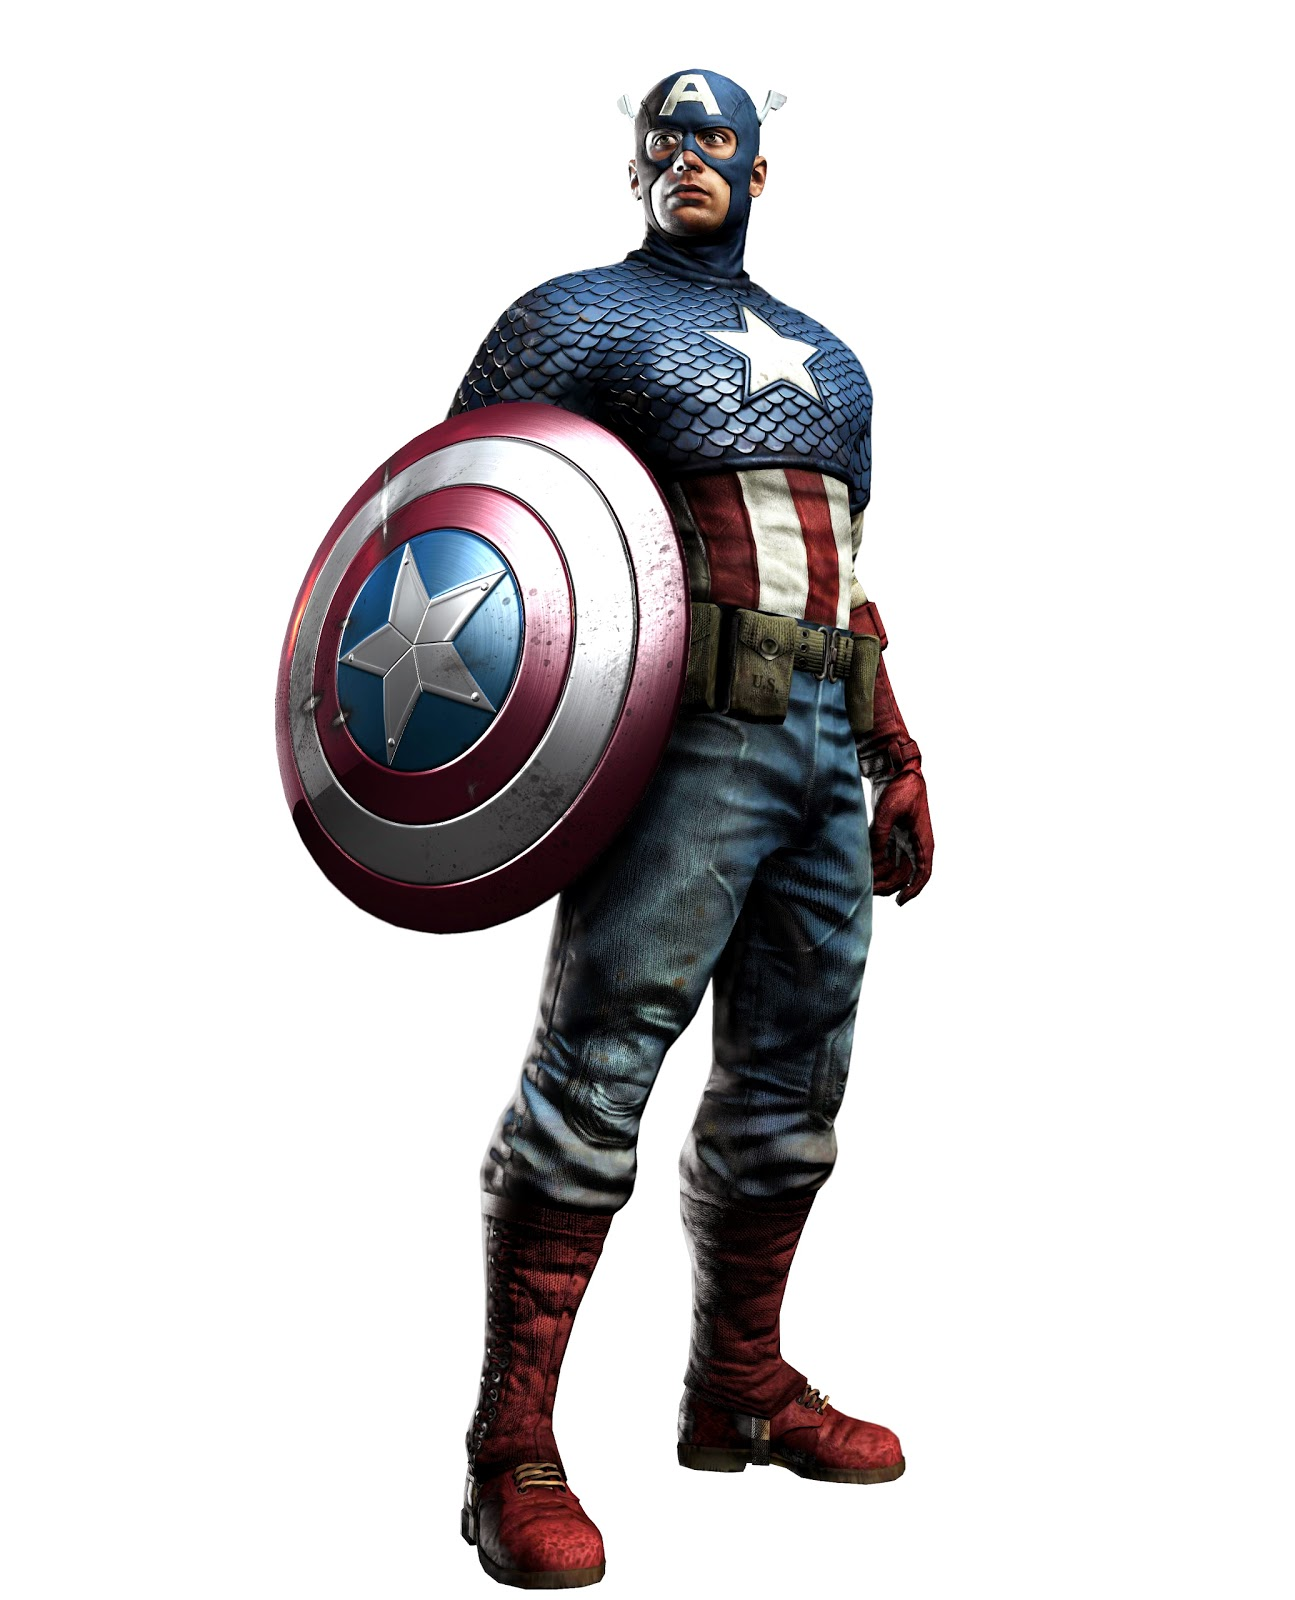 Cut Off 20clipart together with 107877 Chubby Boy Game Sprite also Captain America Vs Wolverine moreover Roadrunner Clip Art additionally ic Fast Running Superhero 9924229. on running man drawing